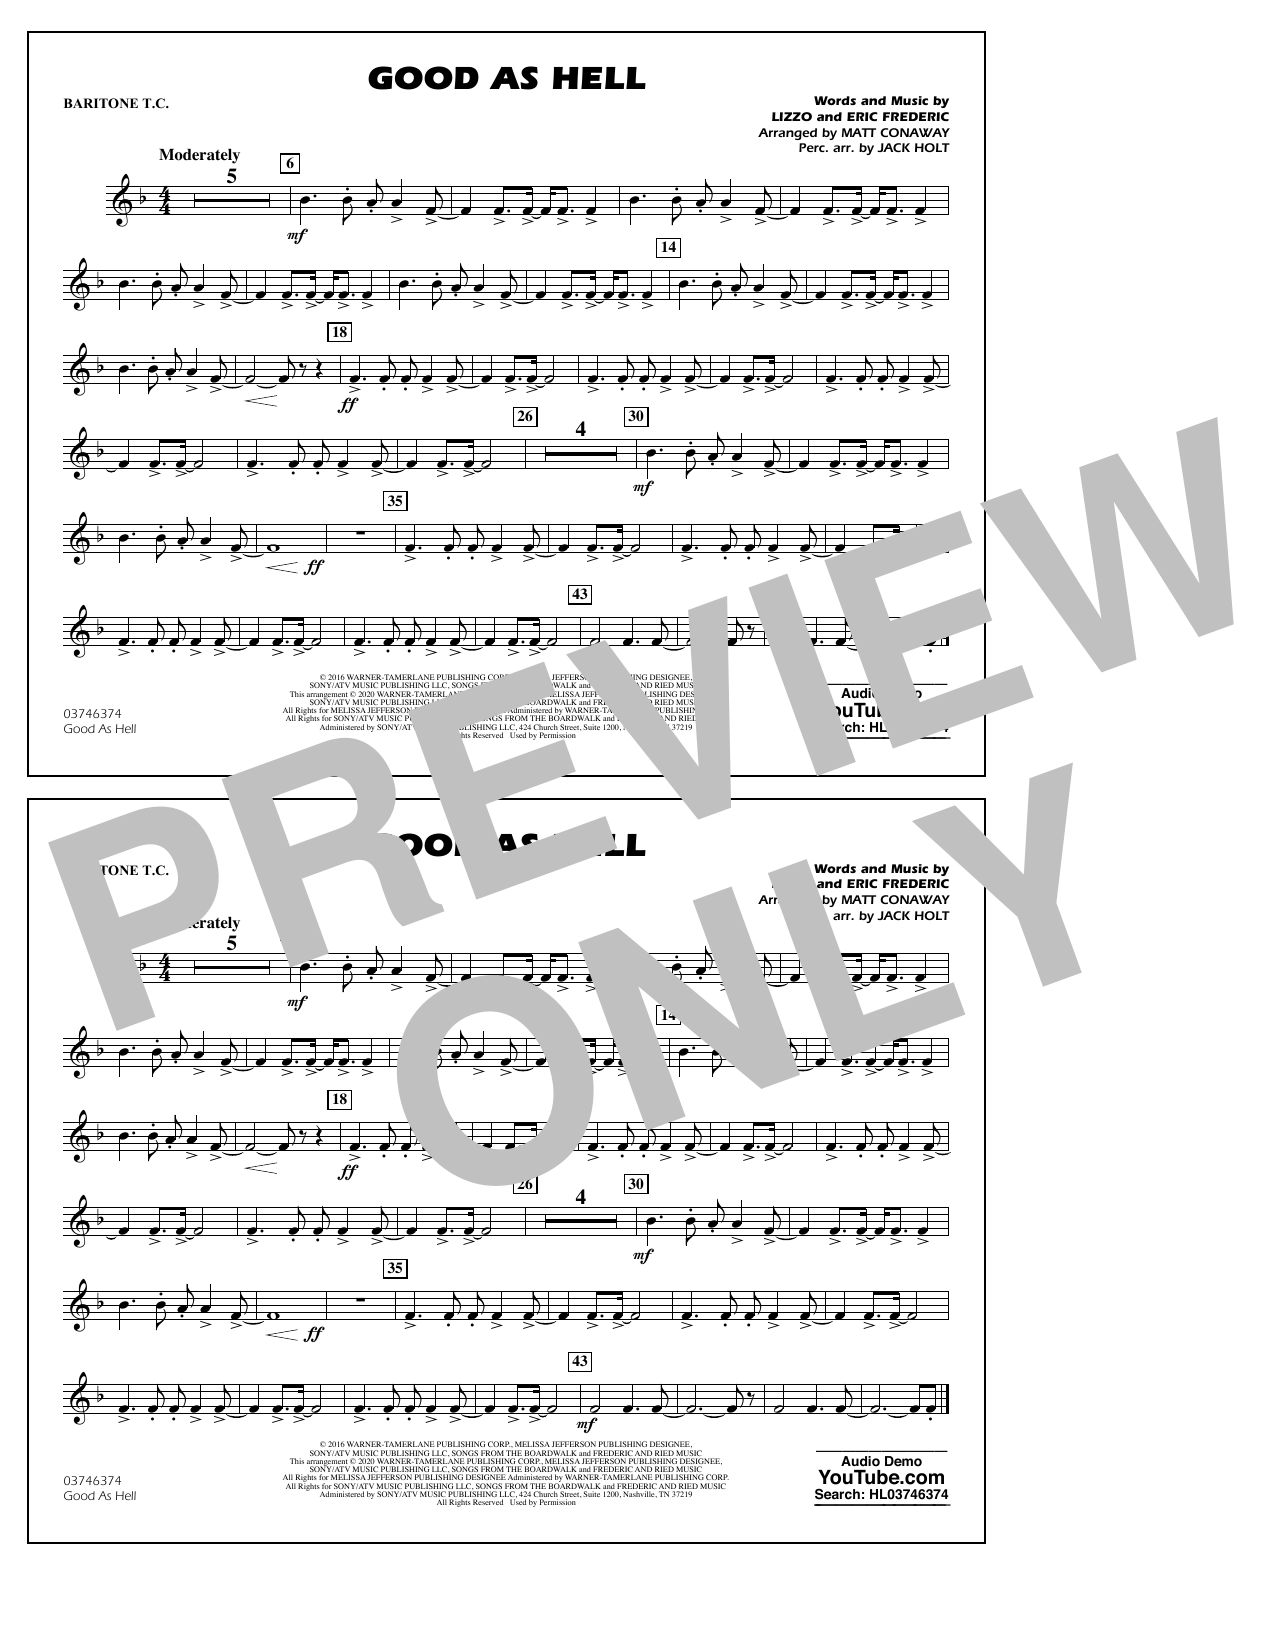 Good As Hell (arr. Matt Conaway and Jack Holt) - Baritone T.C. Sheet Music